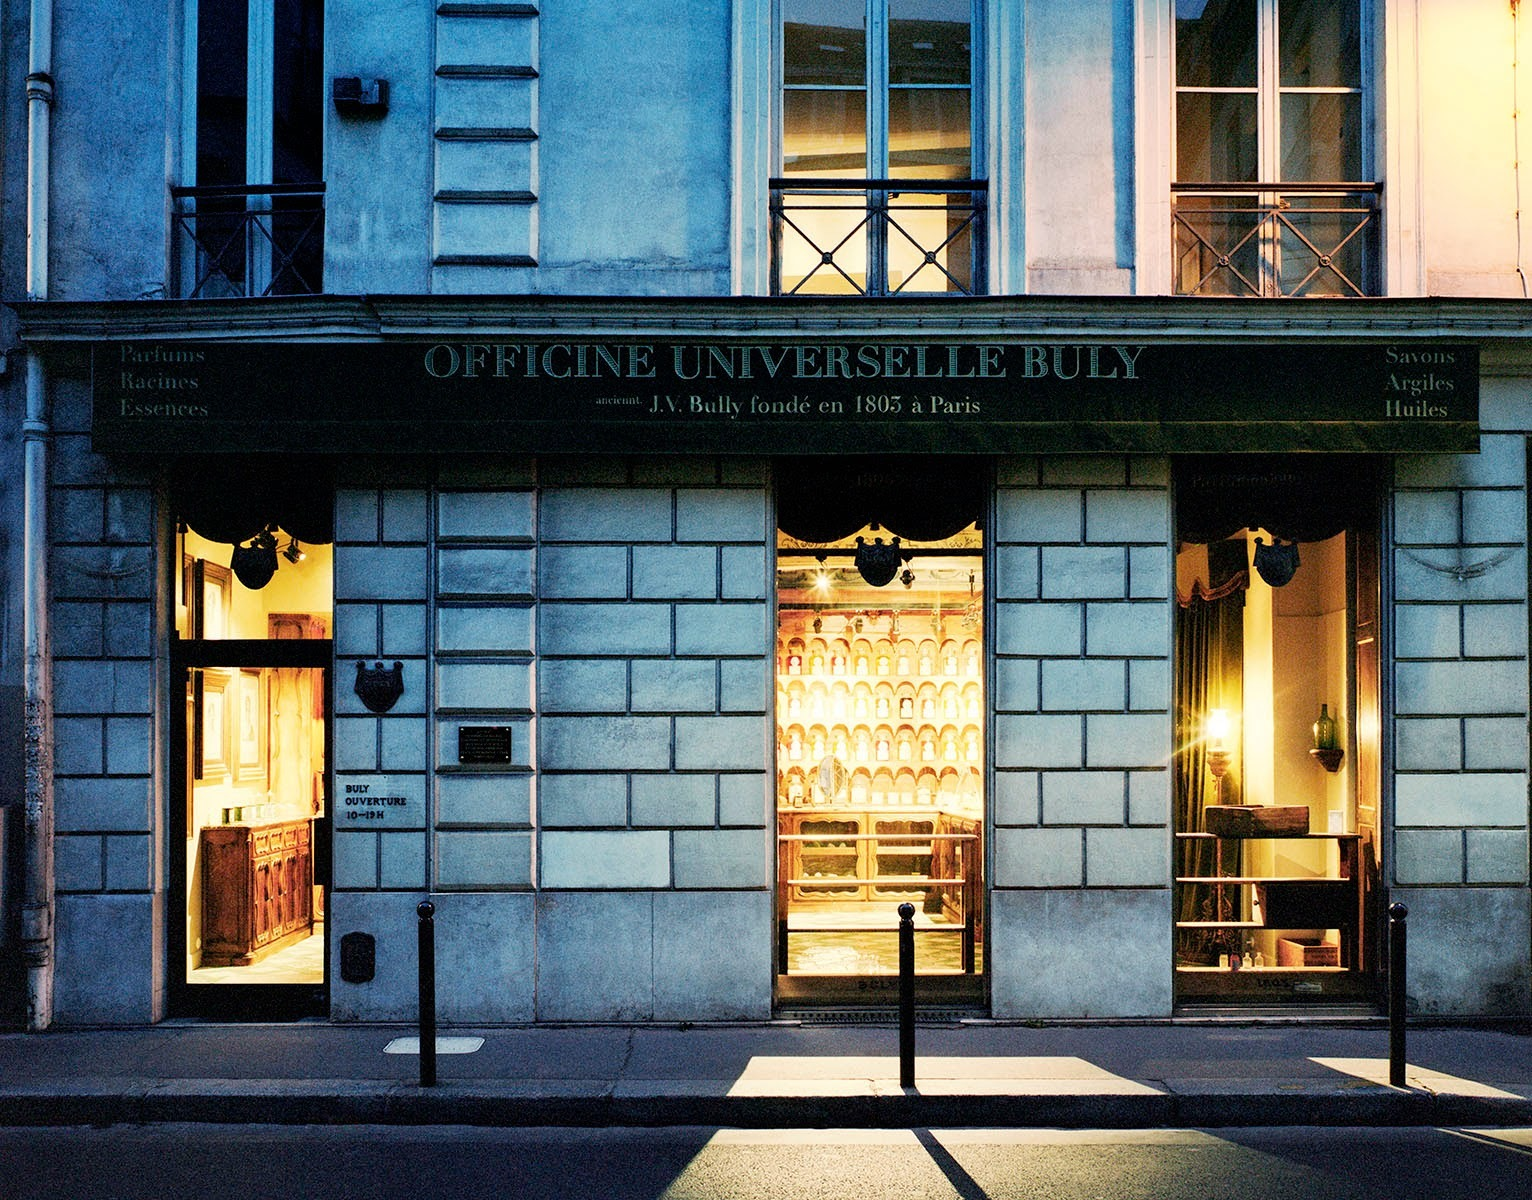 Officine Universelle Buly 1803